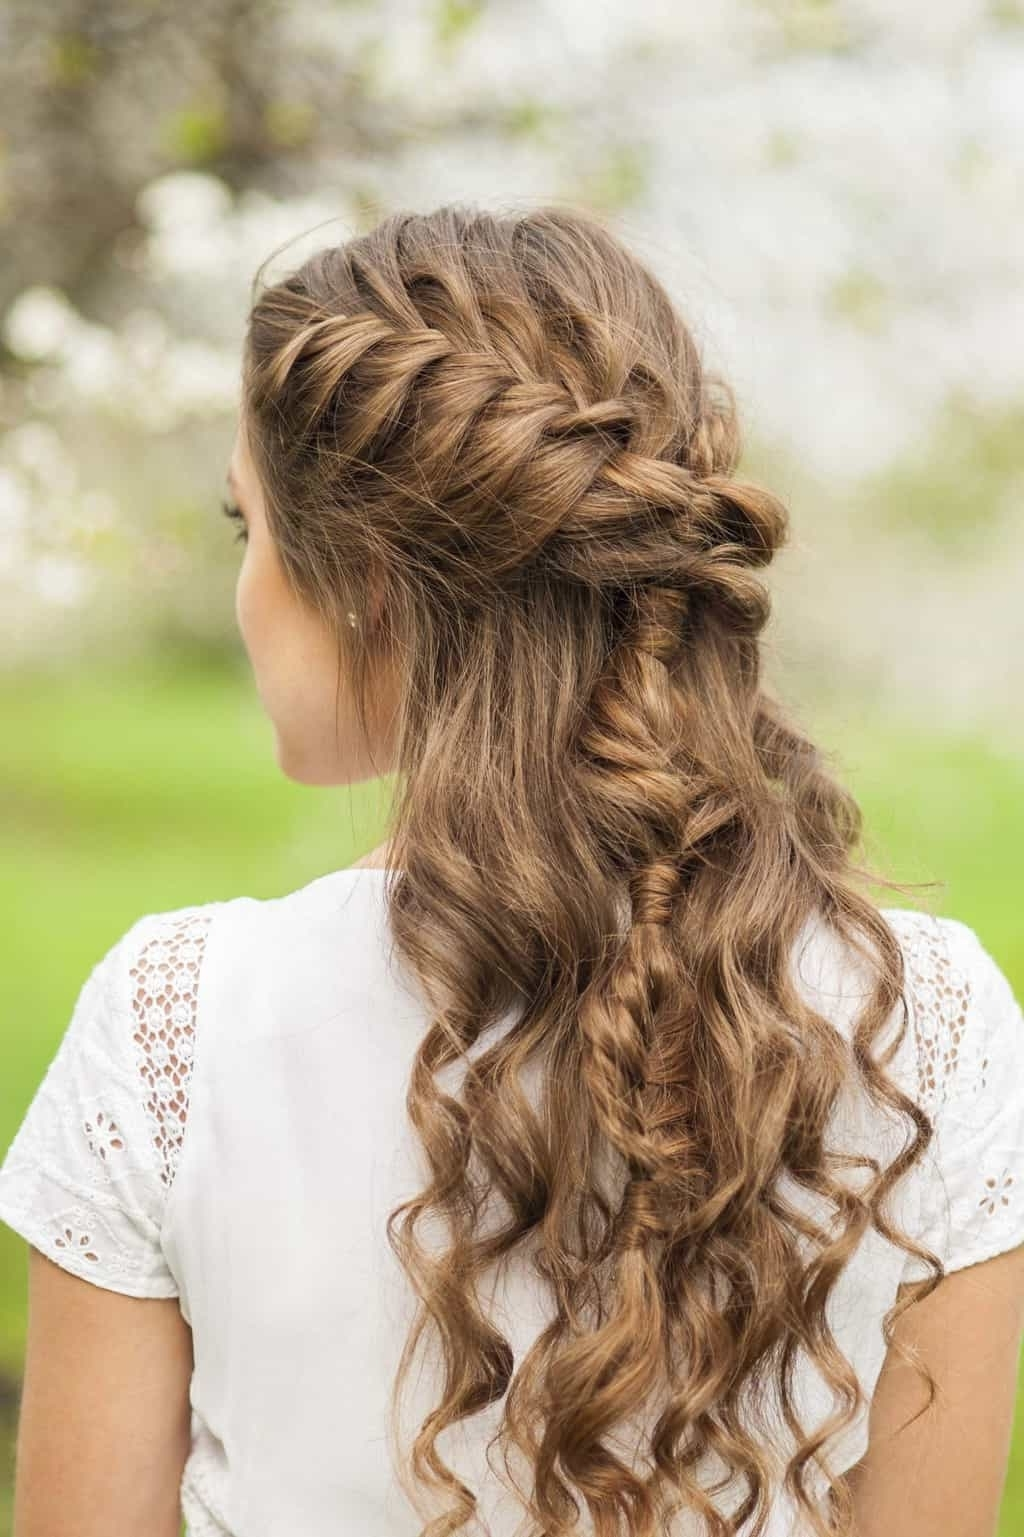 Fashionable French Braid Hairstyles With Curls For 10 Elegant French Braids To Wear With Curly Hair (View 2 of 15)